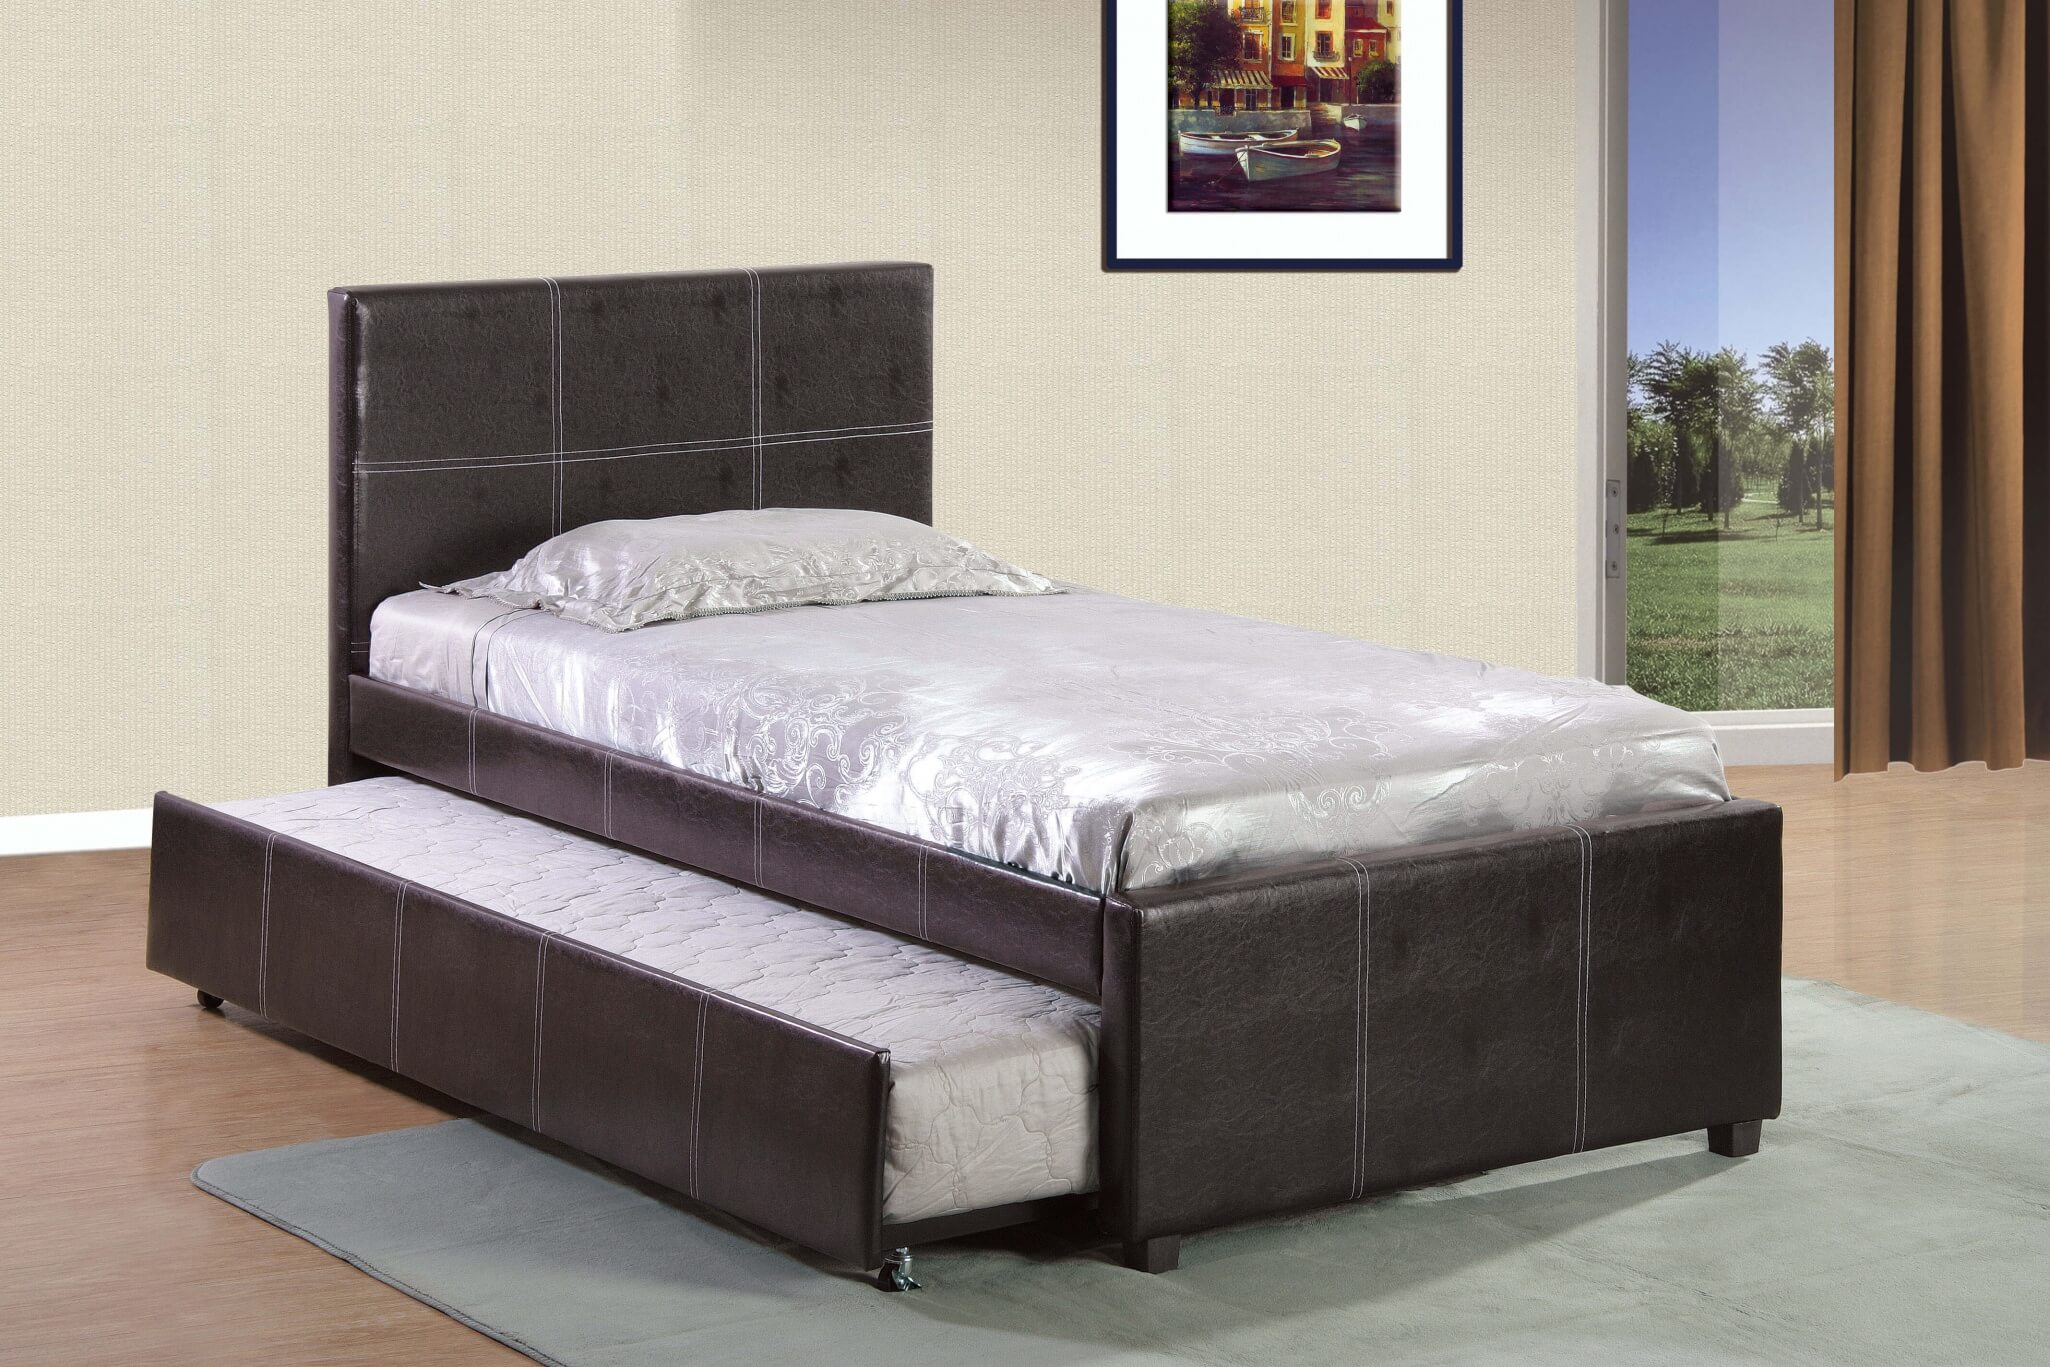 Twin Bed With Trundle By Home Source Kids Beds